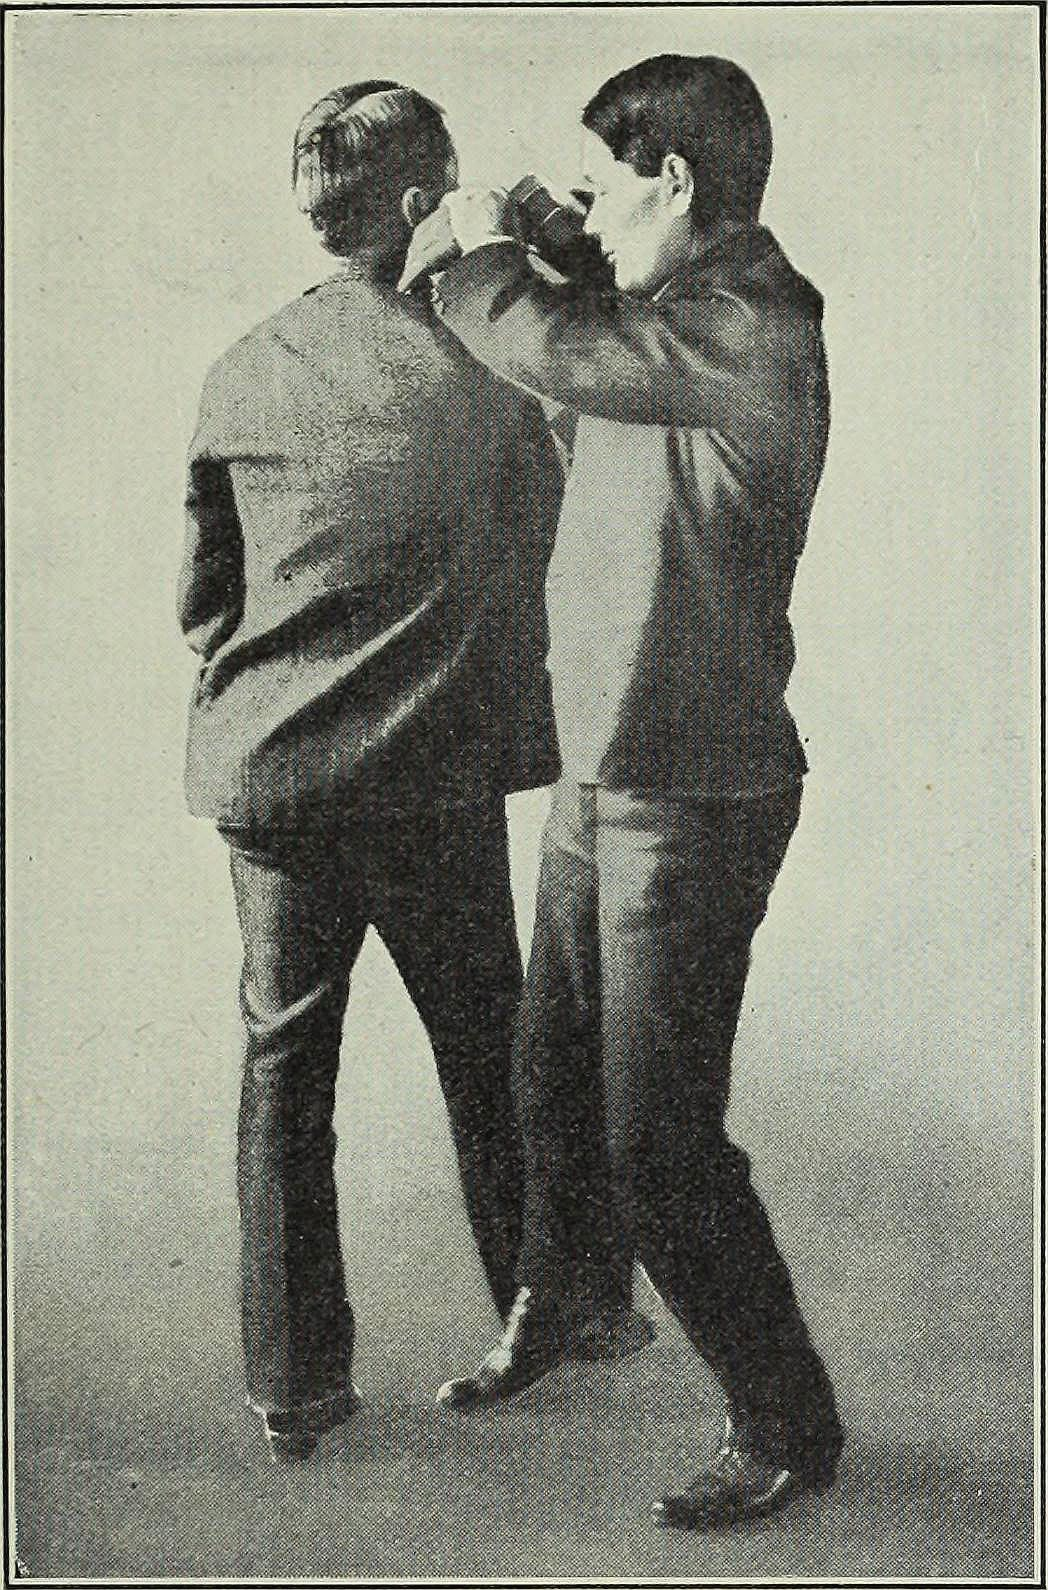 sports-martial arts-jiu-jitsu-interet archive----Image from page 218 of Review of reviews and world's work (1890) 14579815150